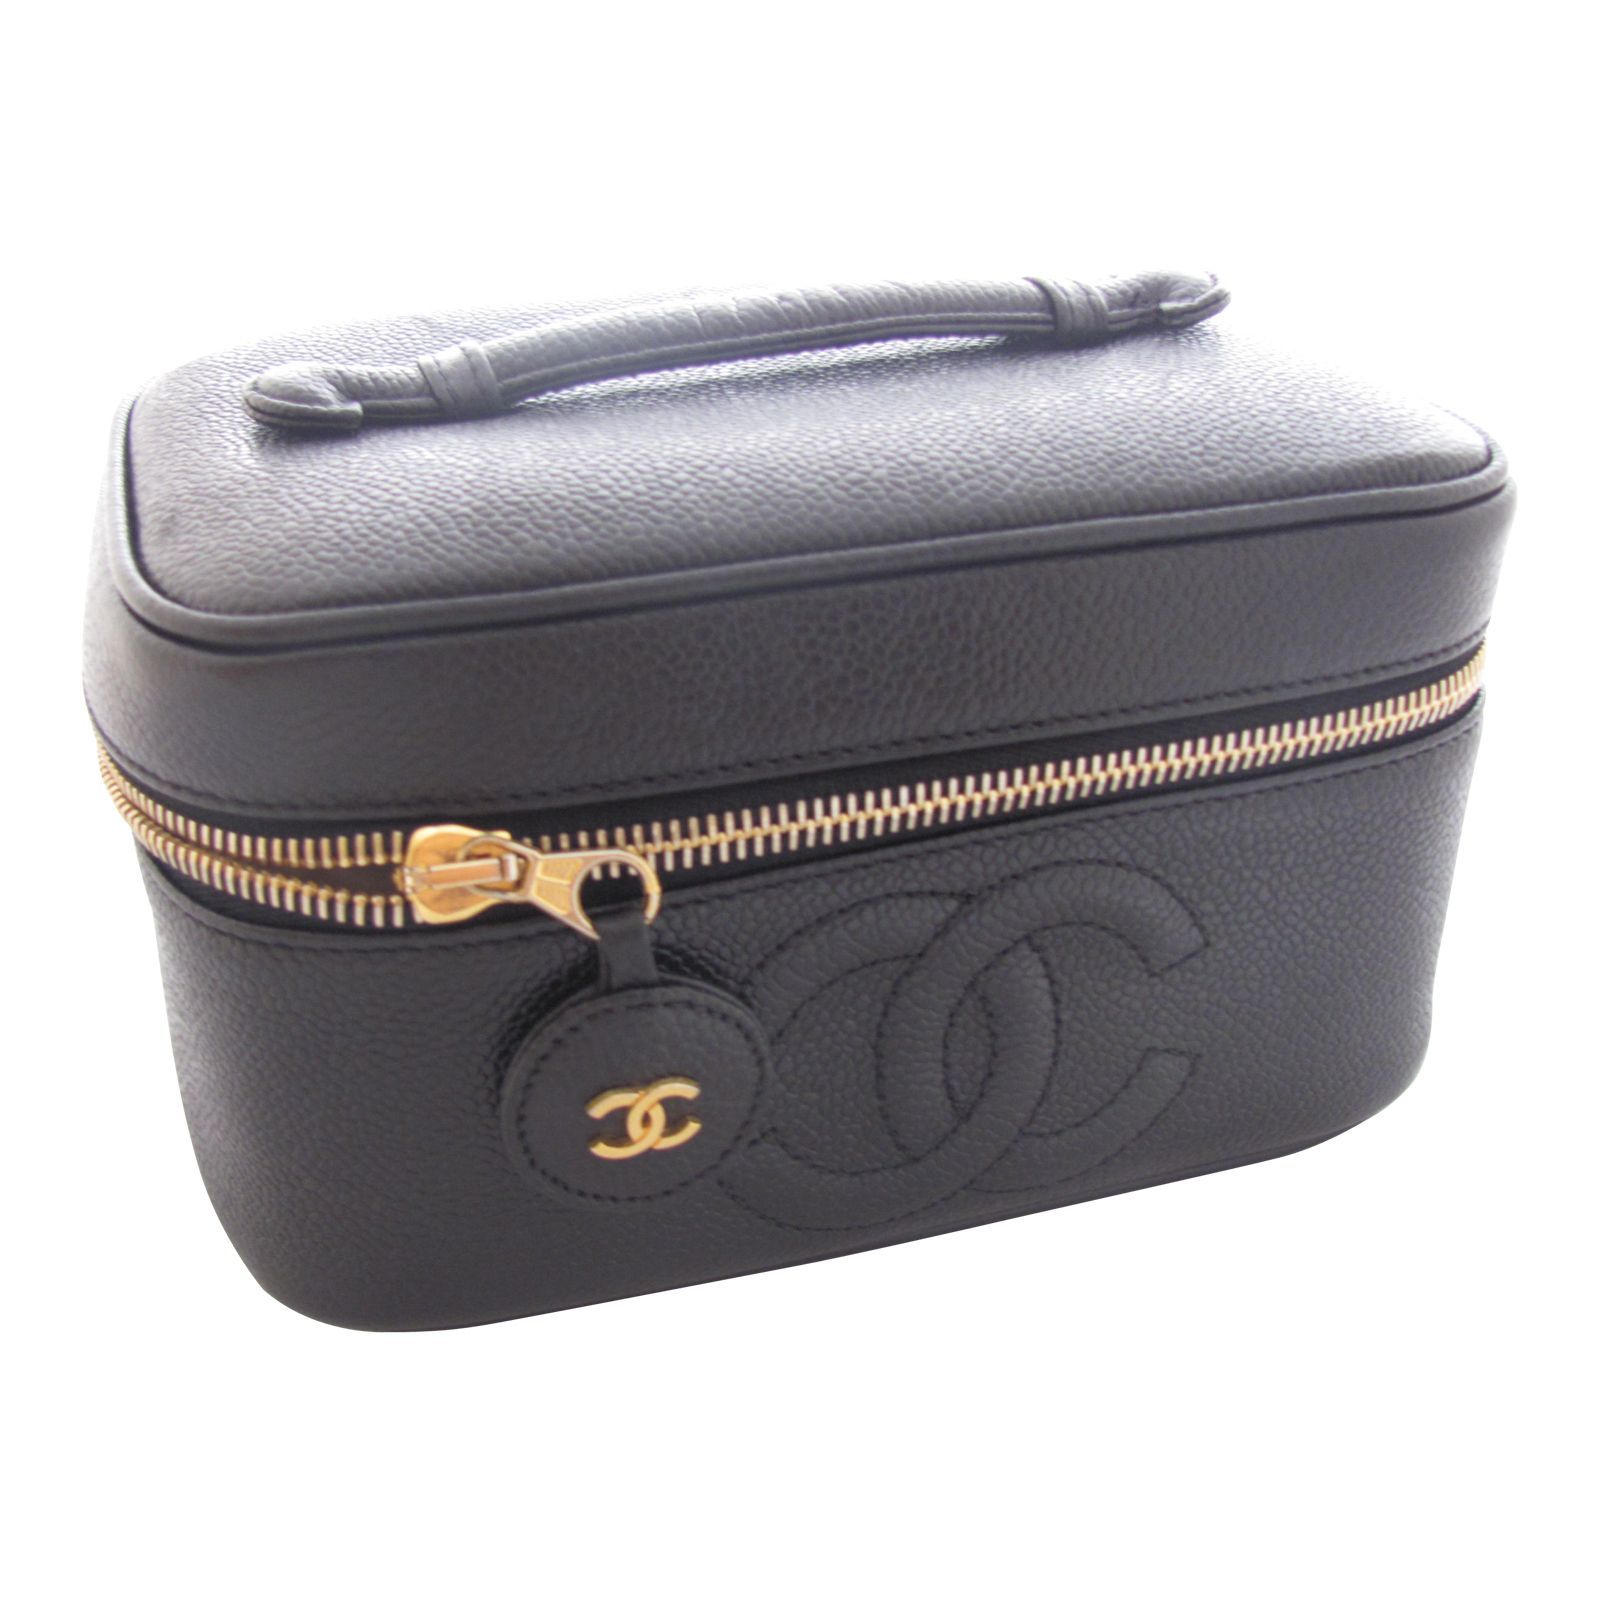 chanel vanity case Bags, Chanel beauty